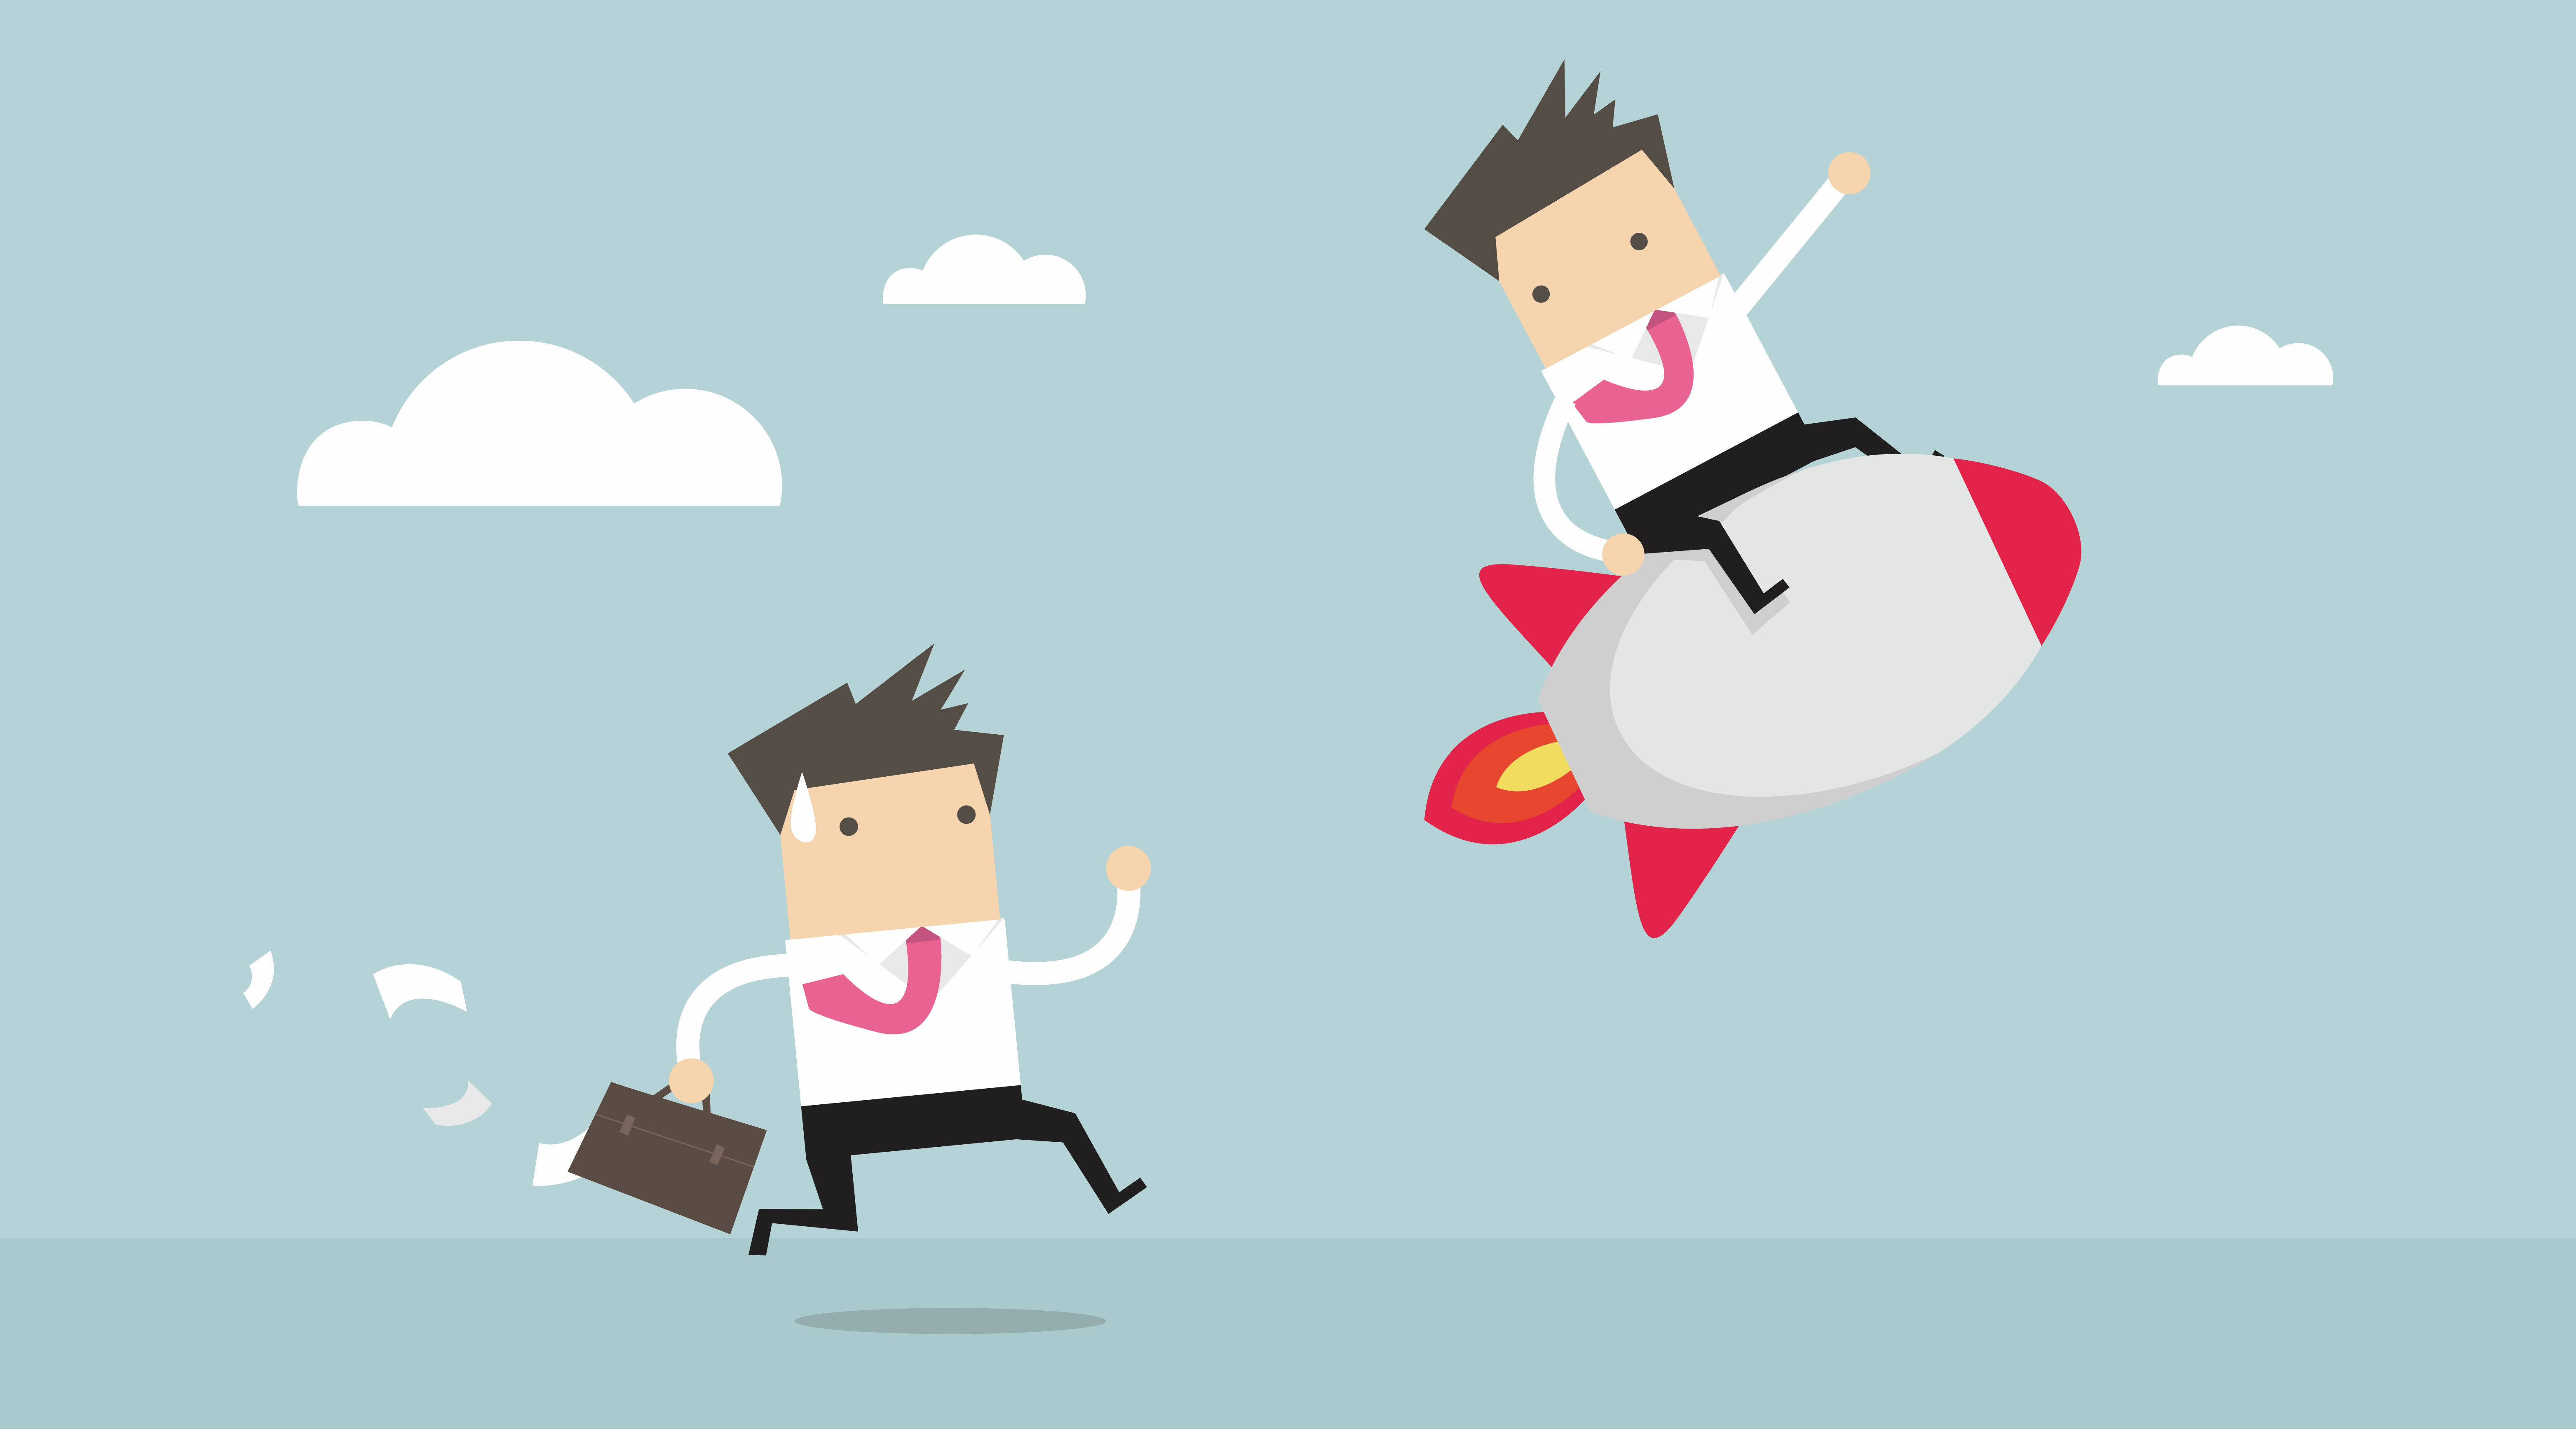 Illustration about competitive advantage. It shows businessman on a rocket, leaving behind another businessman running with a briefcase, papers flying out, trying to catch up.